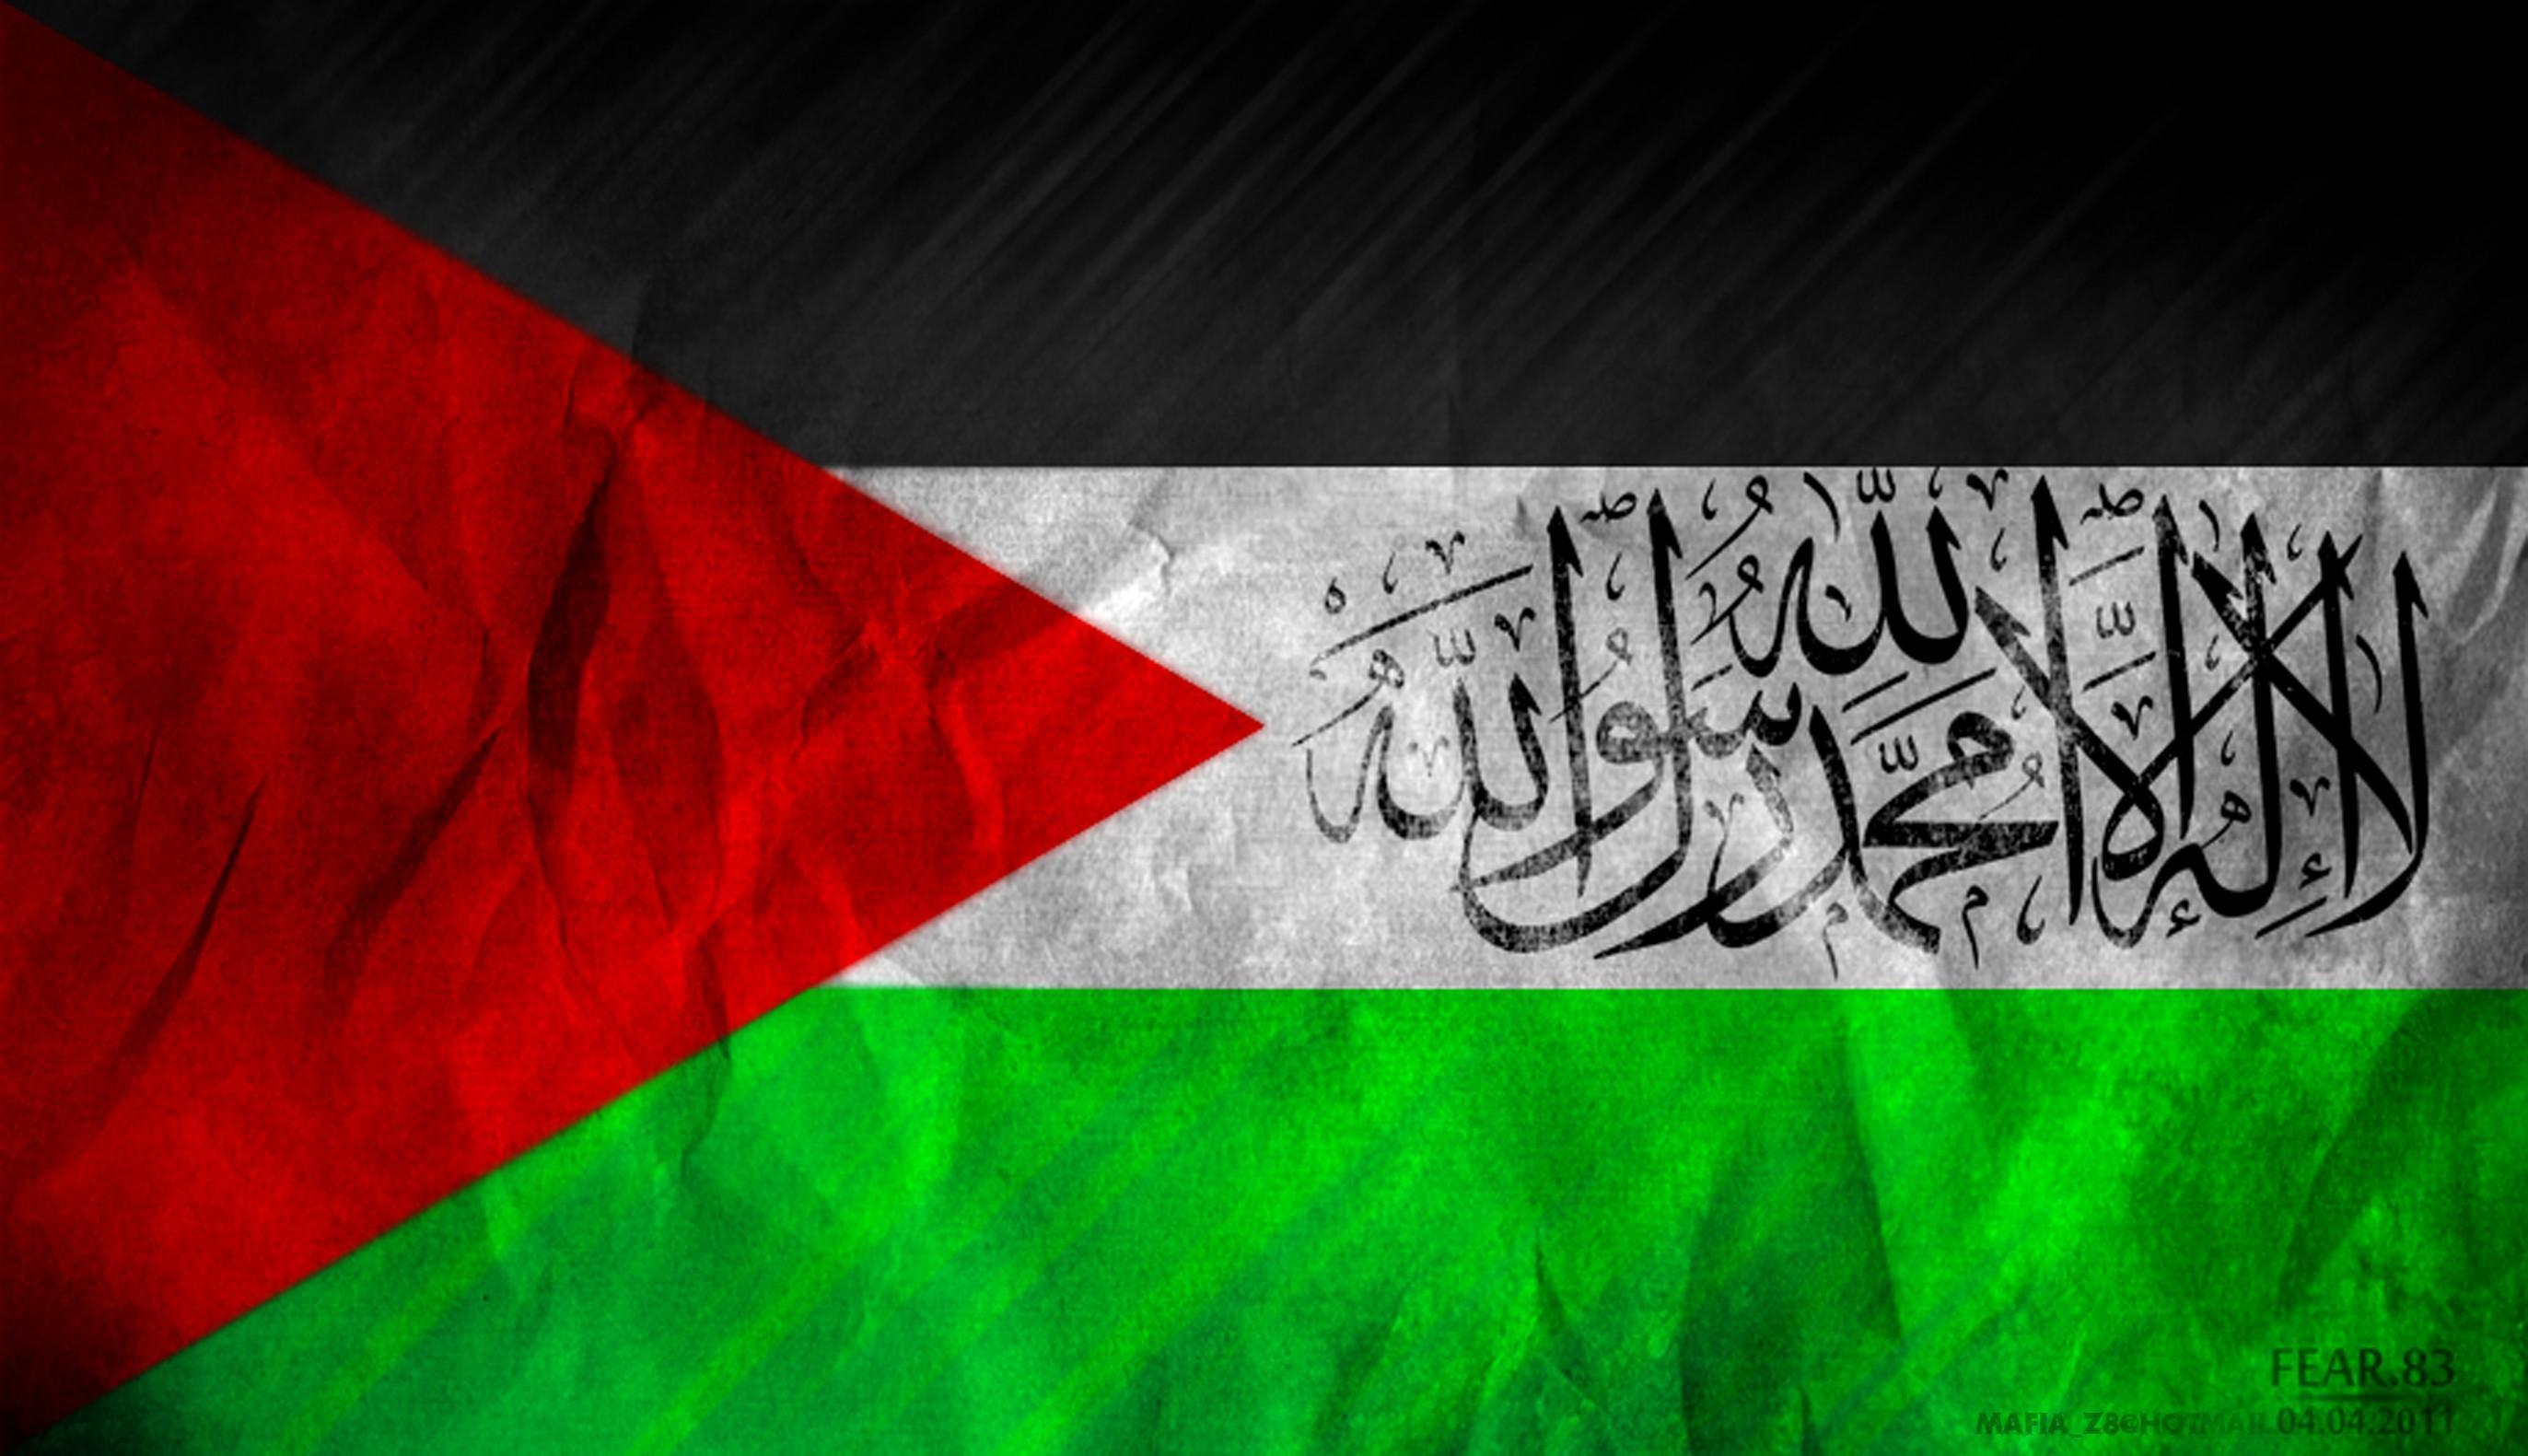 Save Palestine 2016 Wallpapers   Wallpaper Cave Palestine Wallpaper Desktop Background   HD Wallpapers Range